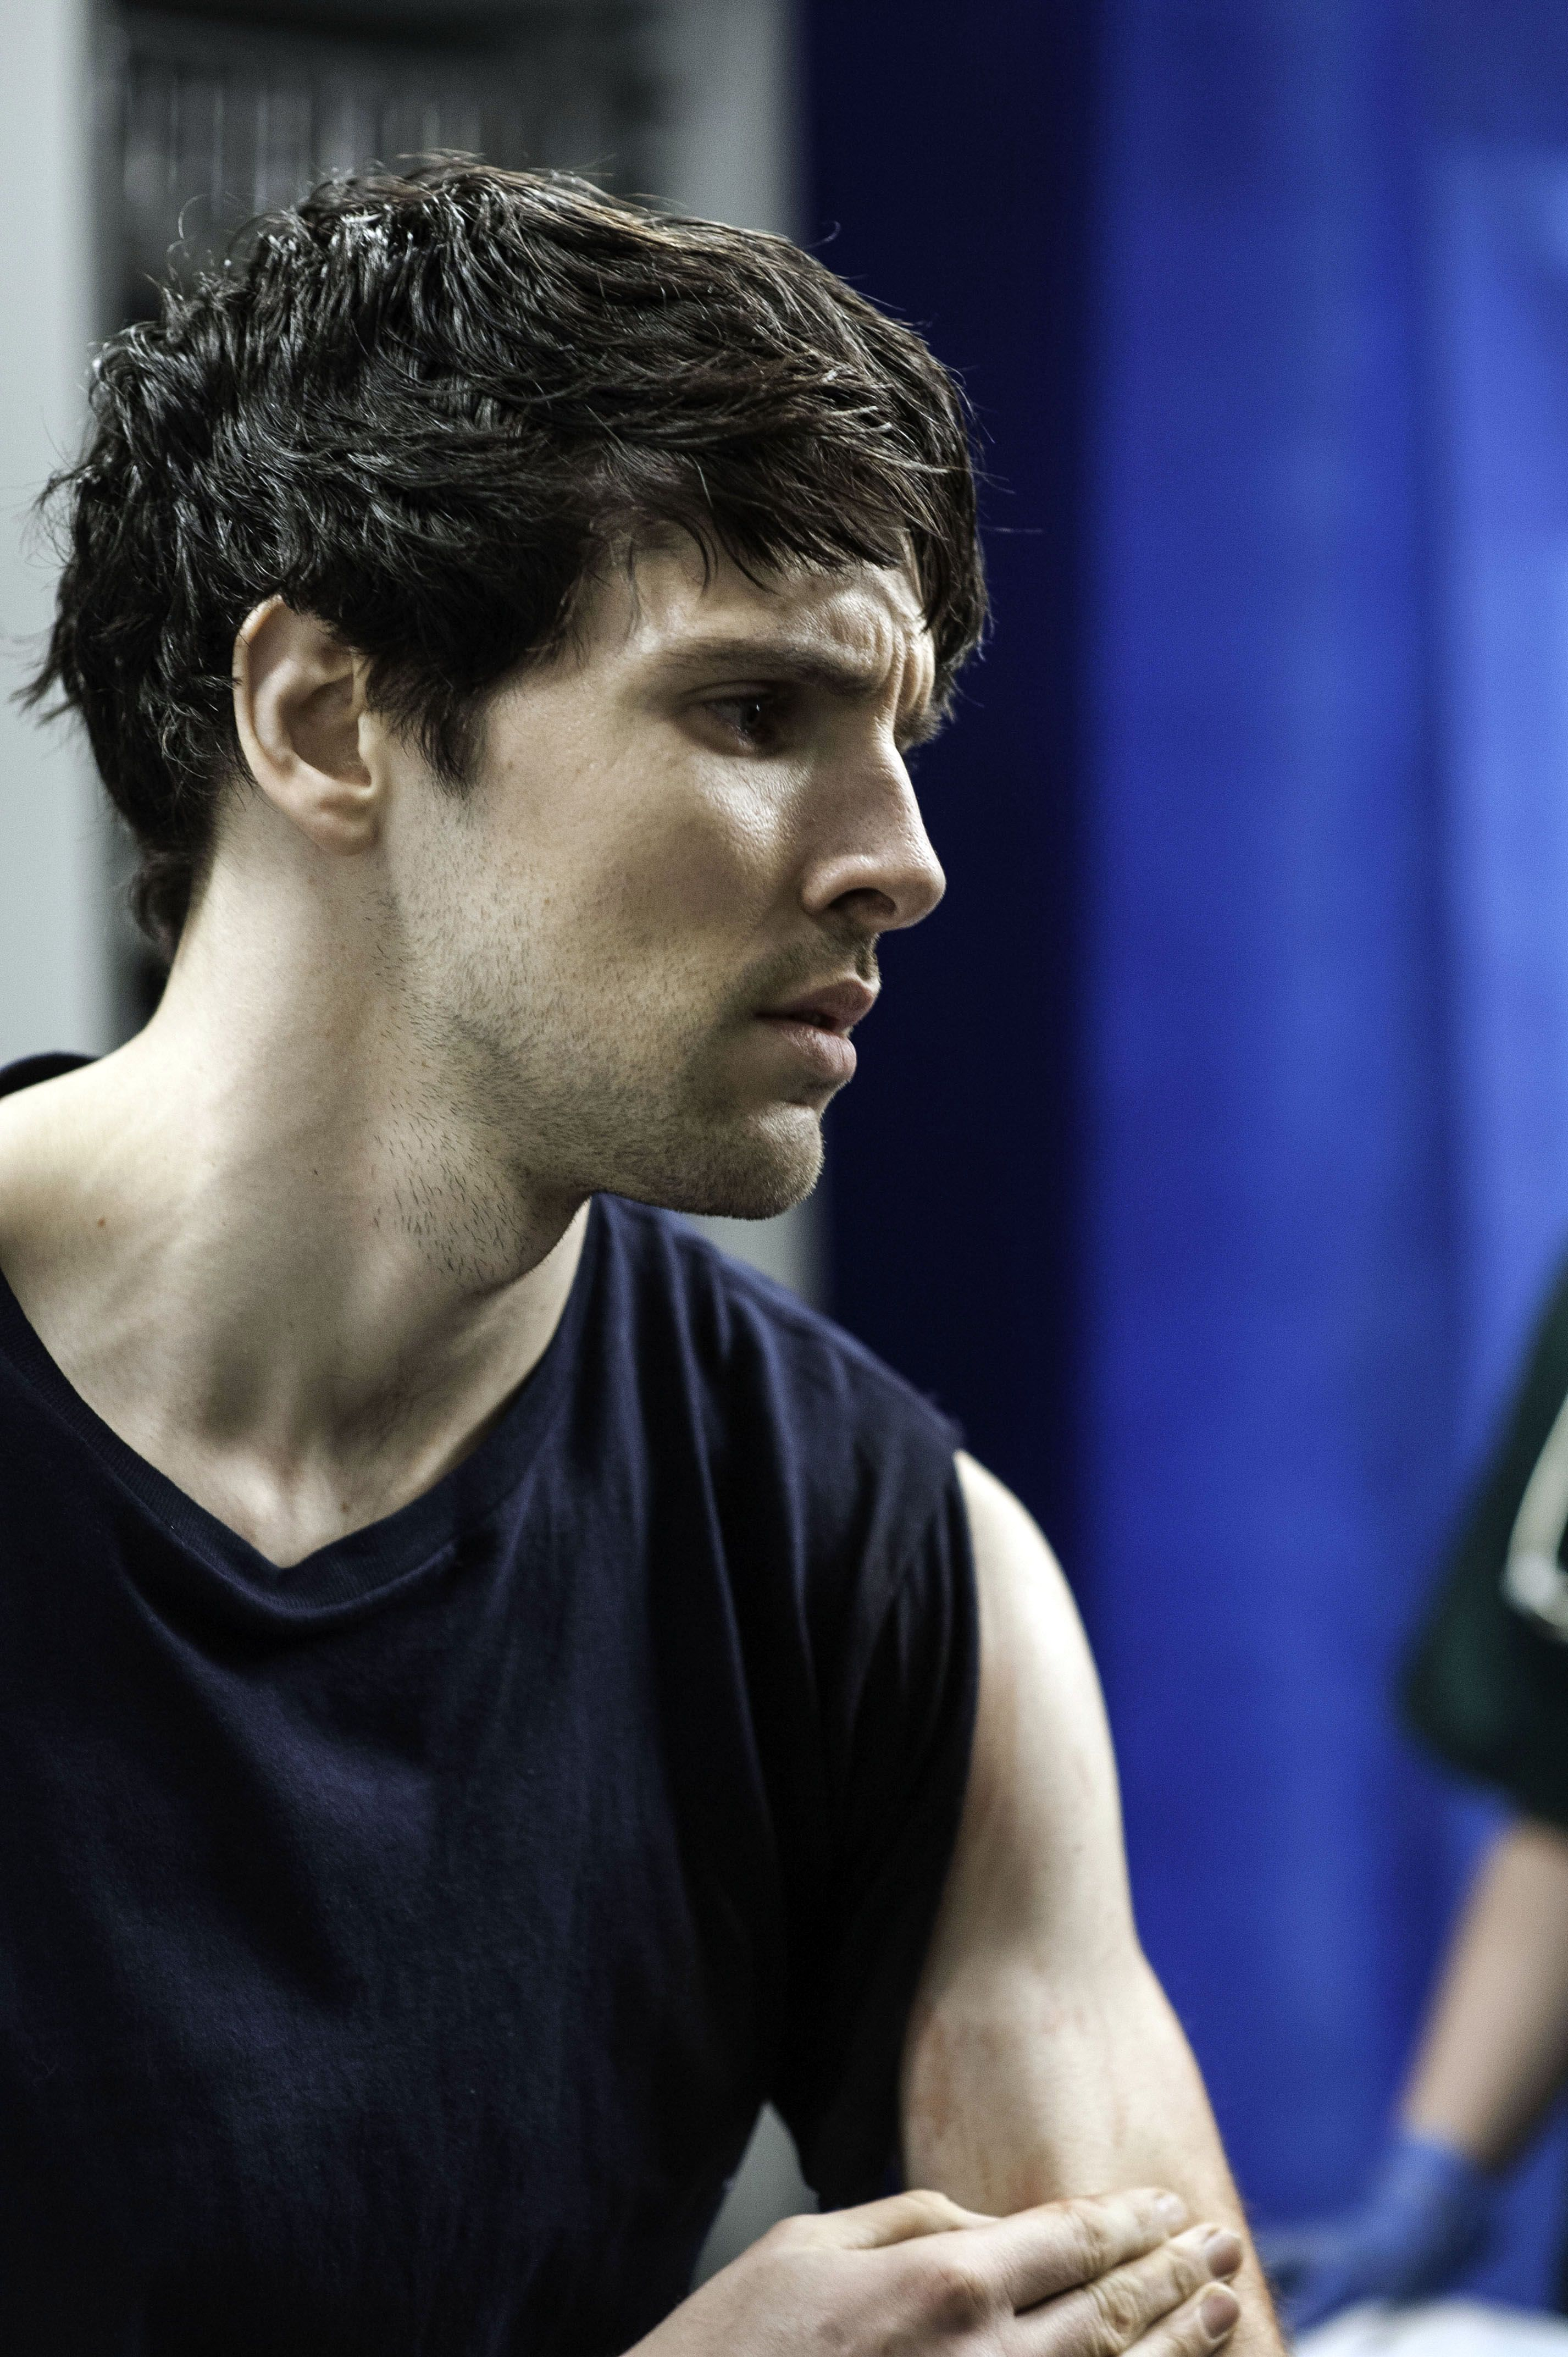 Colin Morgan (born 1986) nude (95 photos), Ass, Sideboobs, Instagram, underwear 2006